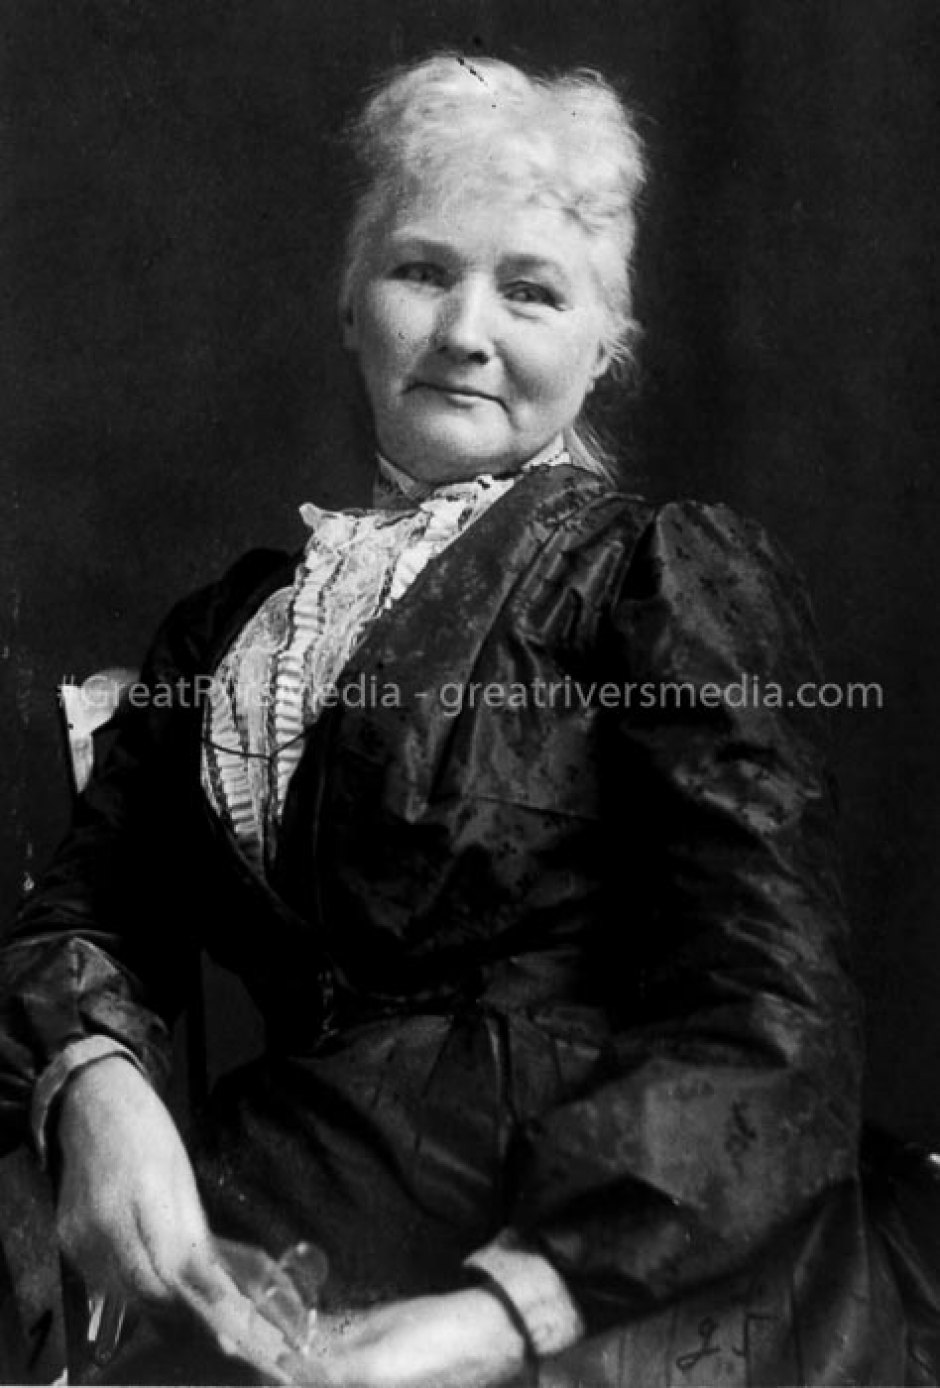 Mary G. Harris Jones, known as Mother Jones was one of the most hated women in America at one time. She helped coordinate major strikes and co founded the Industrial Workers of the World.